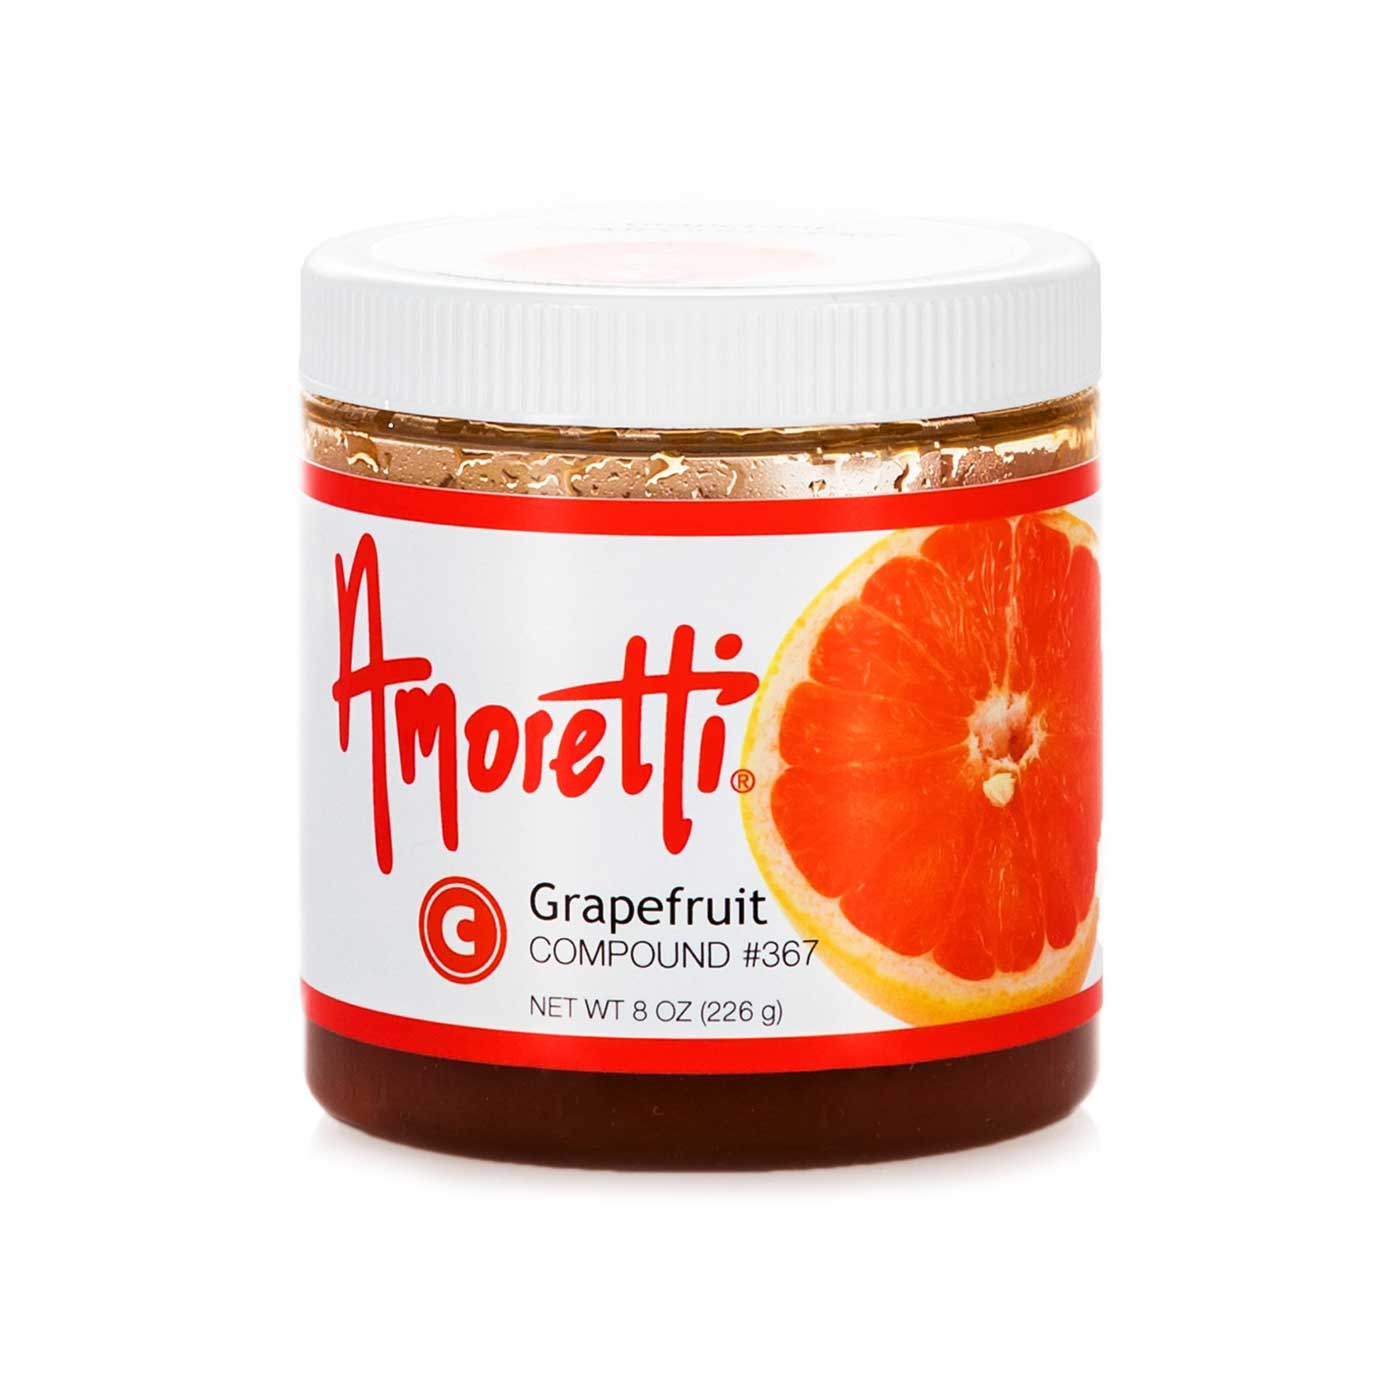 Use Amoretti Grapefruit Compound to add the taste of fresh grapefruit to creams, sauces, batters, ice creams, and anything else you desire!